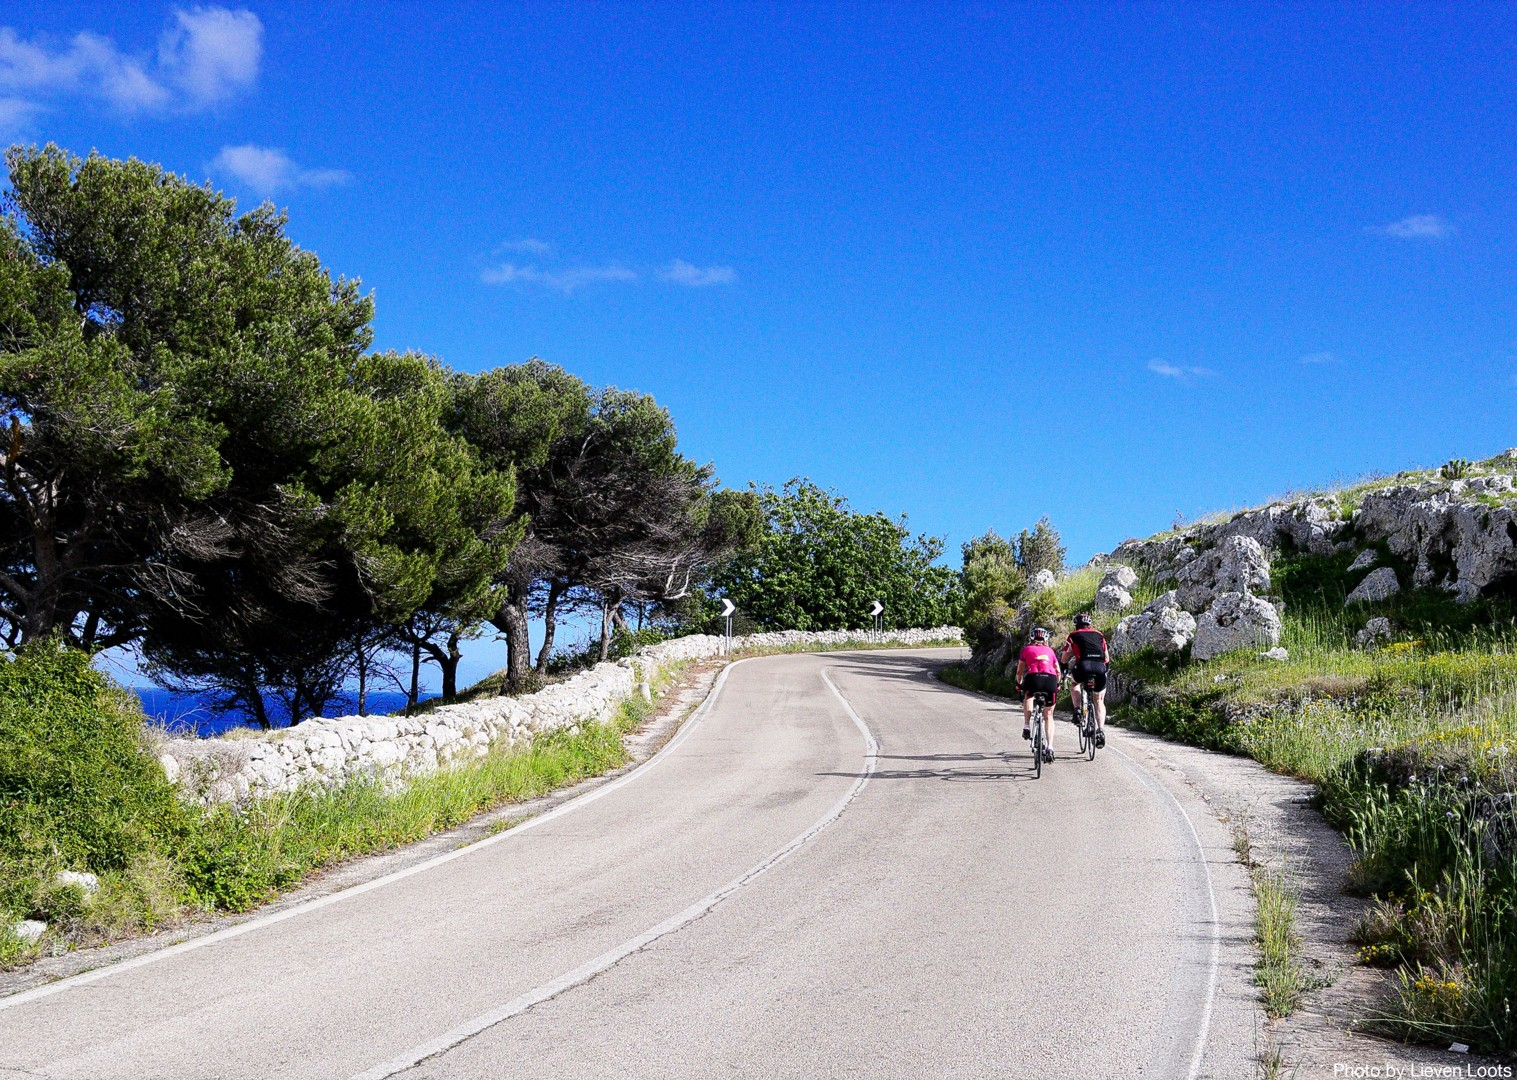 italy-puglia-self-guided-cycling.jpg - Italy - Puglia - The Heel of Italy - Self-Guided Road Cycling Holiday - Italia Road Cycling